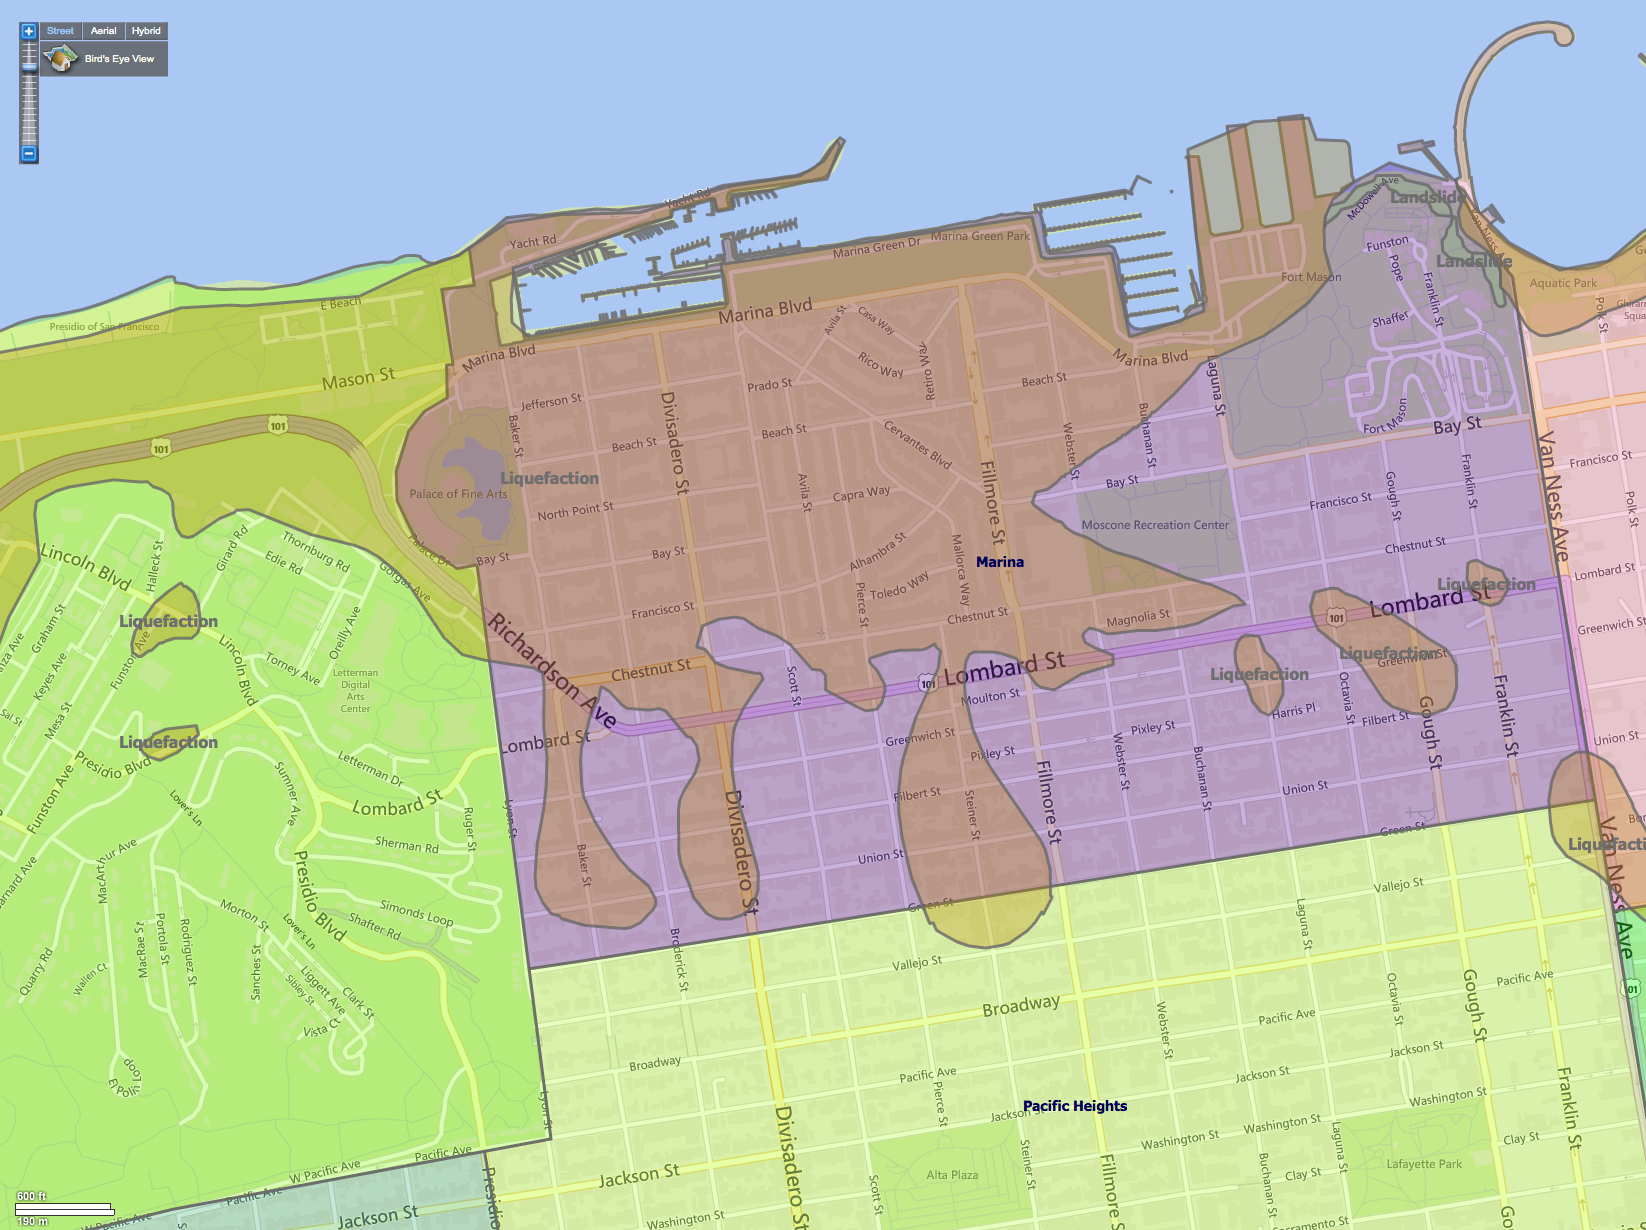 Liquefaction Zones Of San Franciscos Marina District